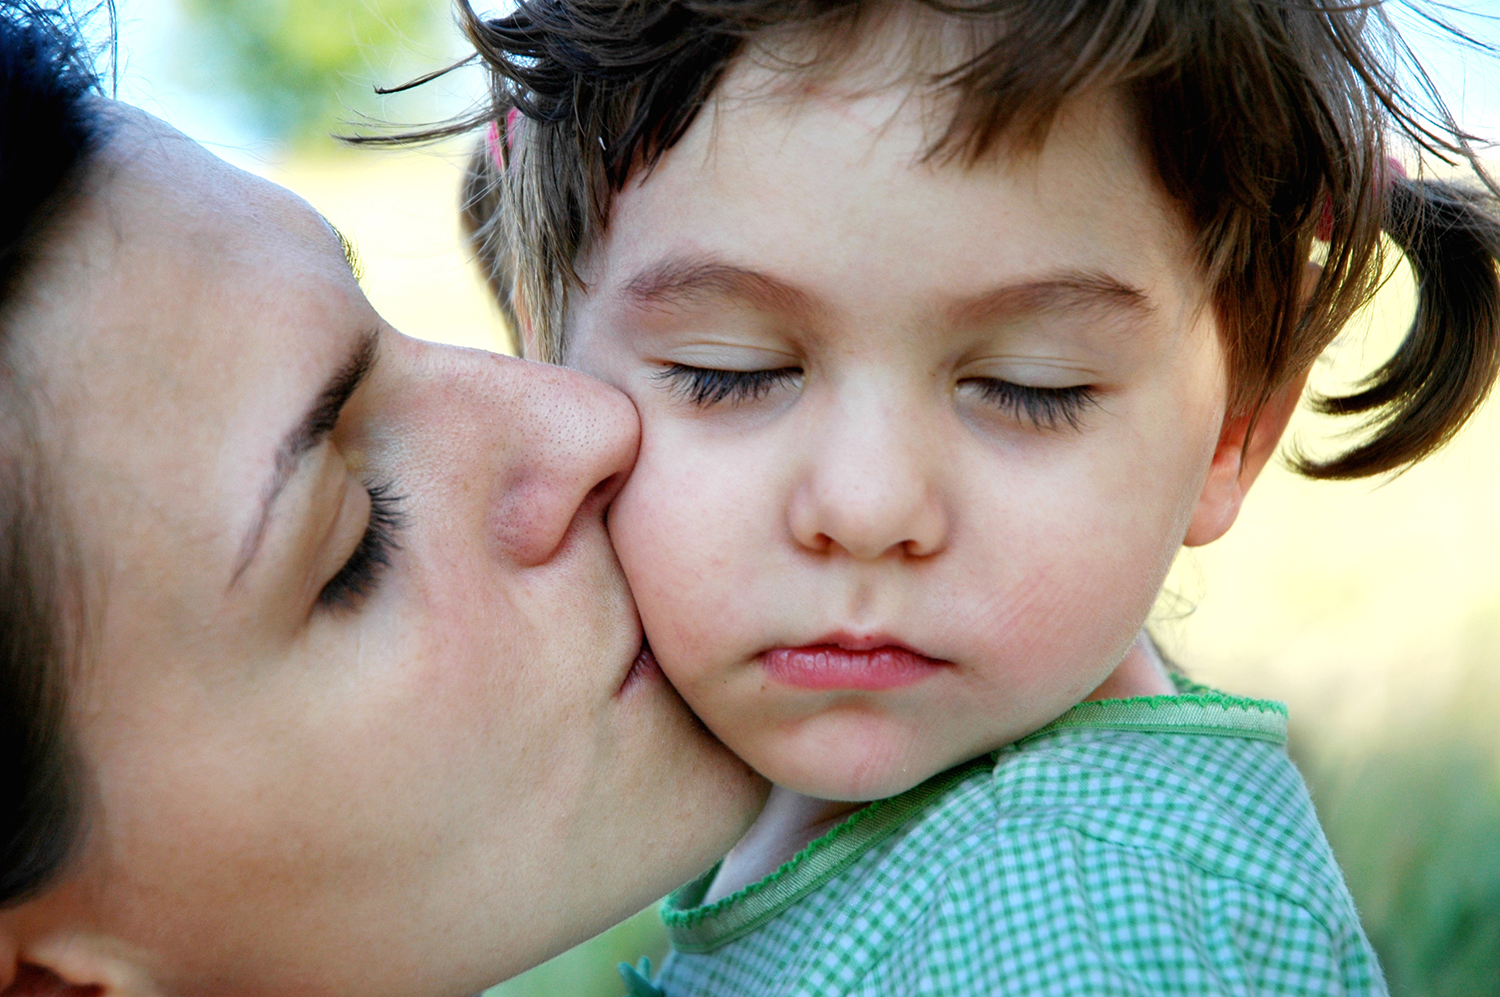 Mother kisses her sleepy daughter on the cheek.